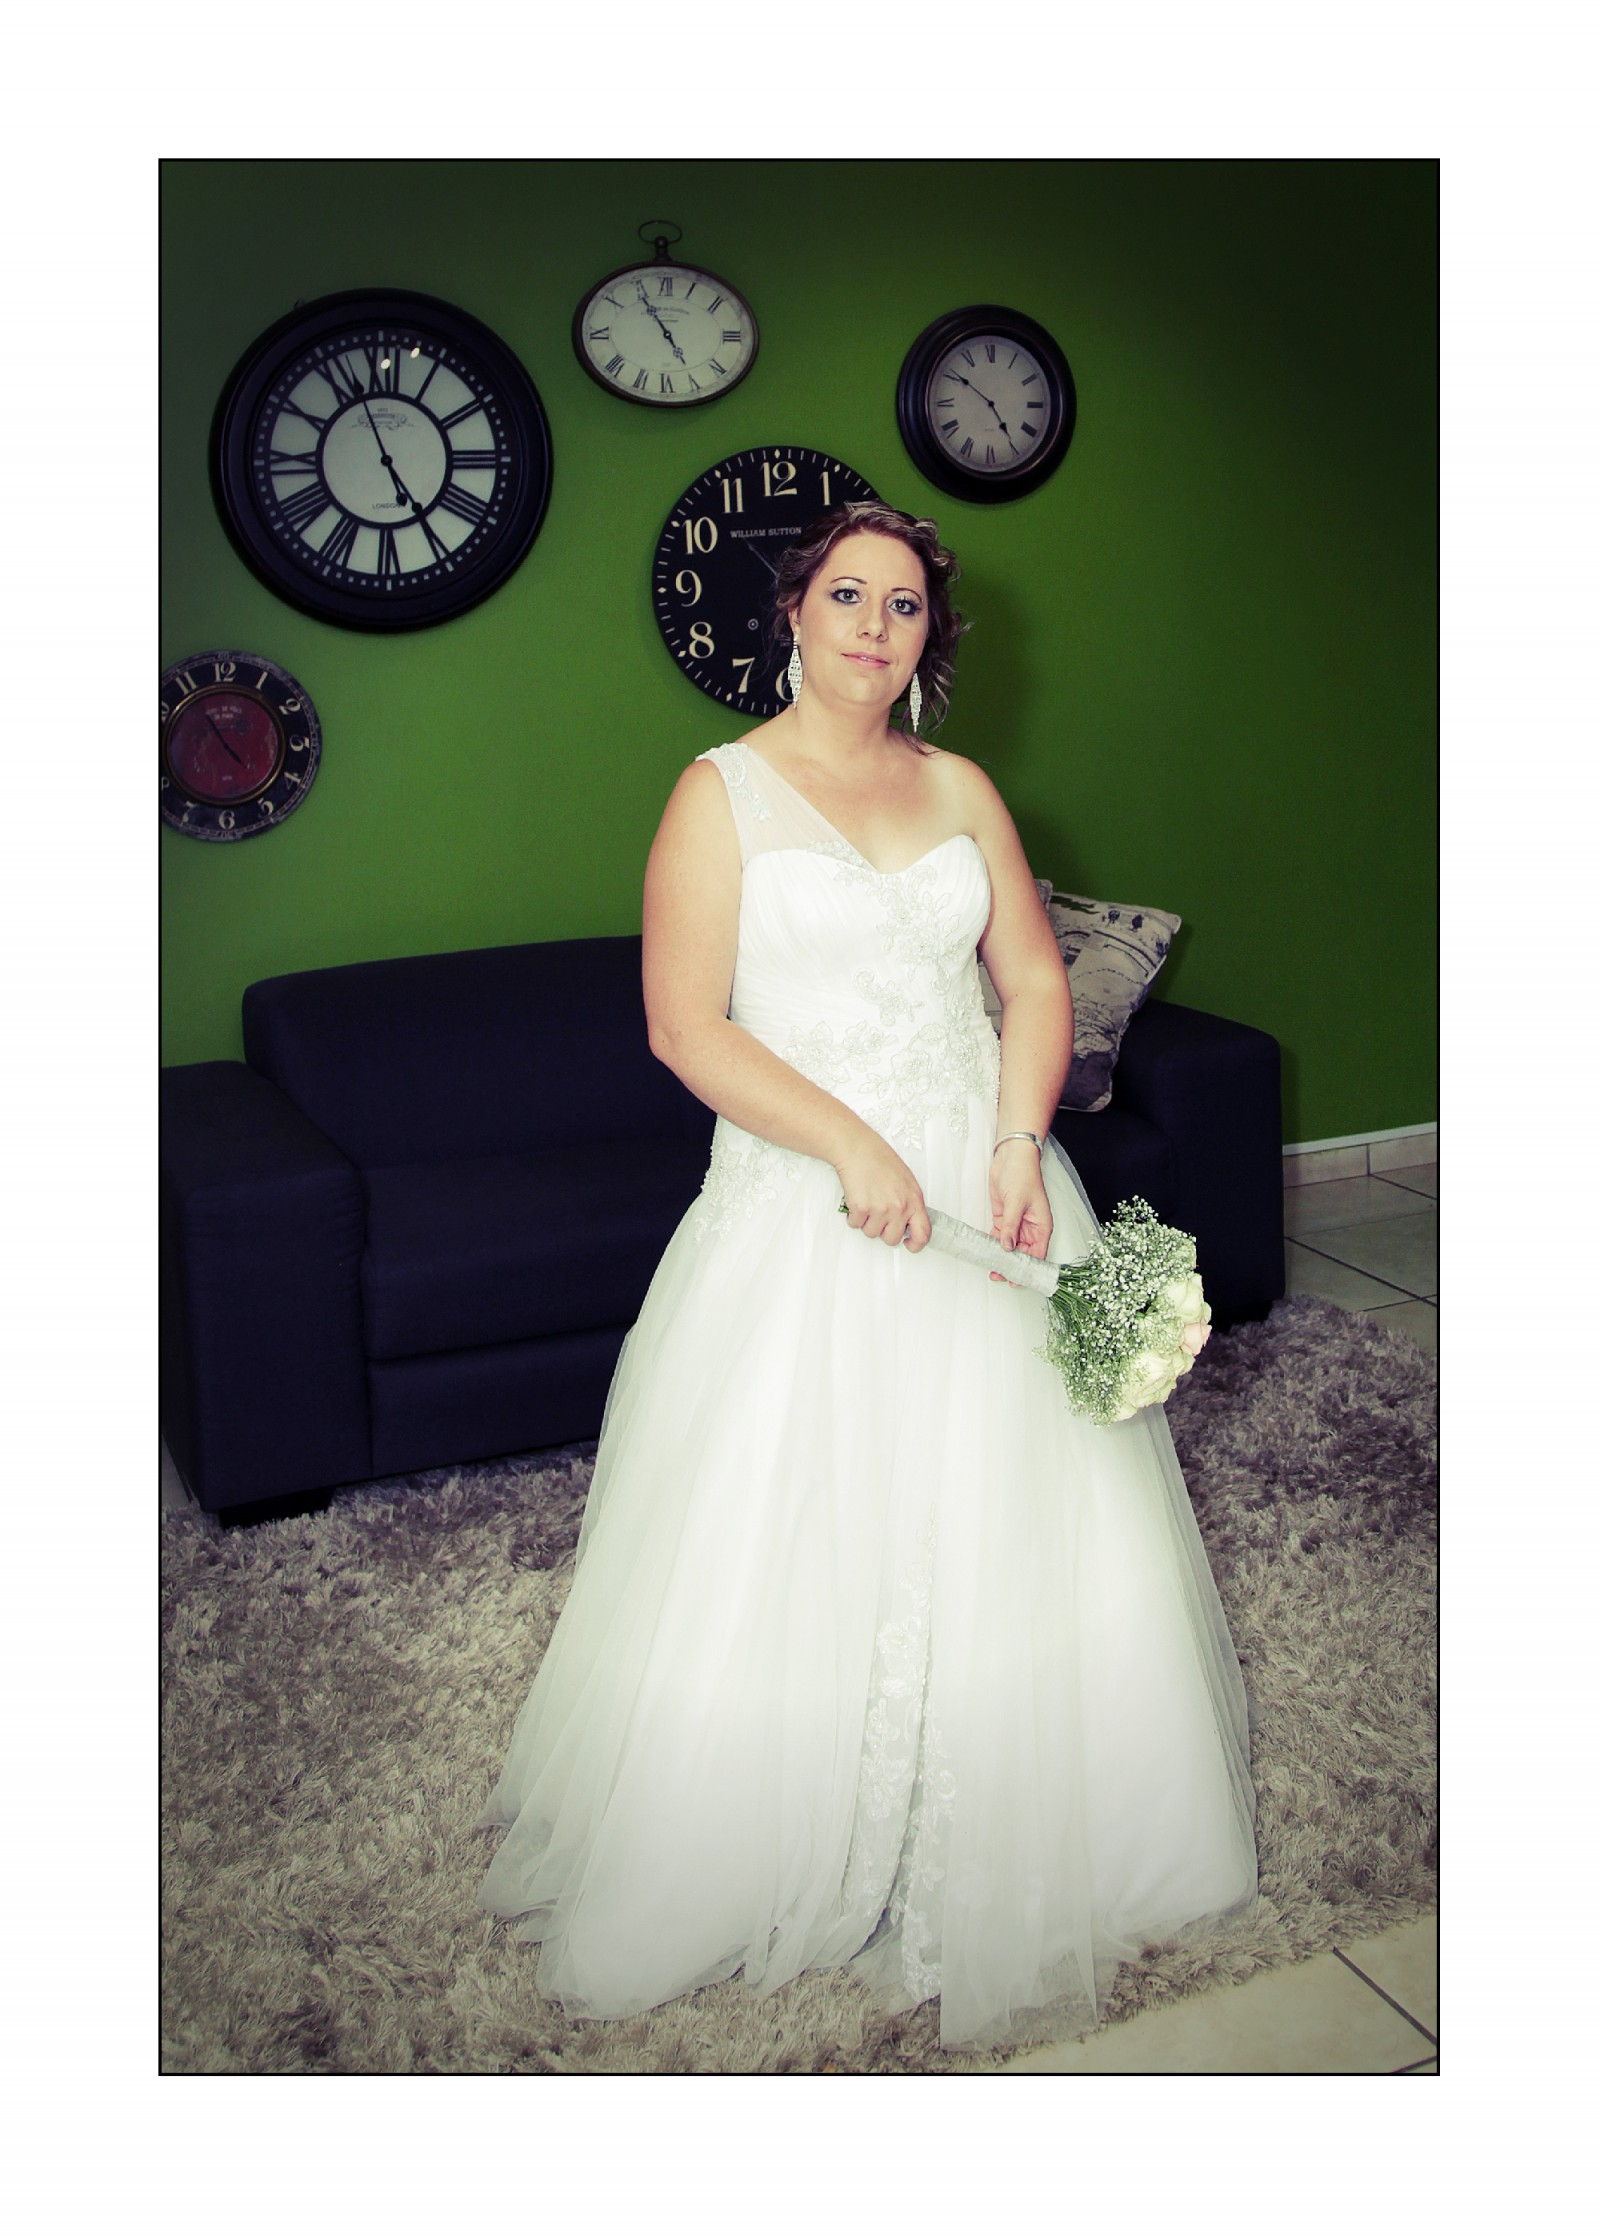 Bridal Gowns Vanderbijlpark : Ball gown wedding dress on sale off